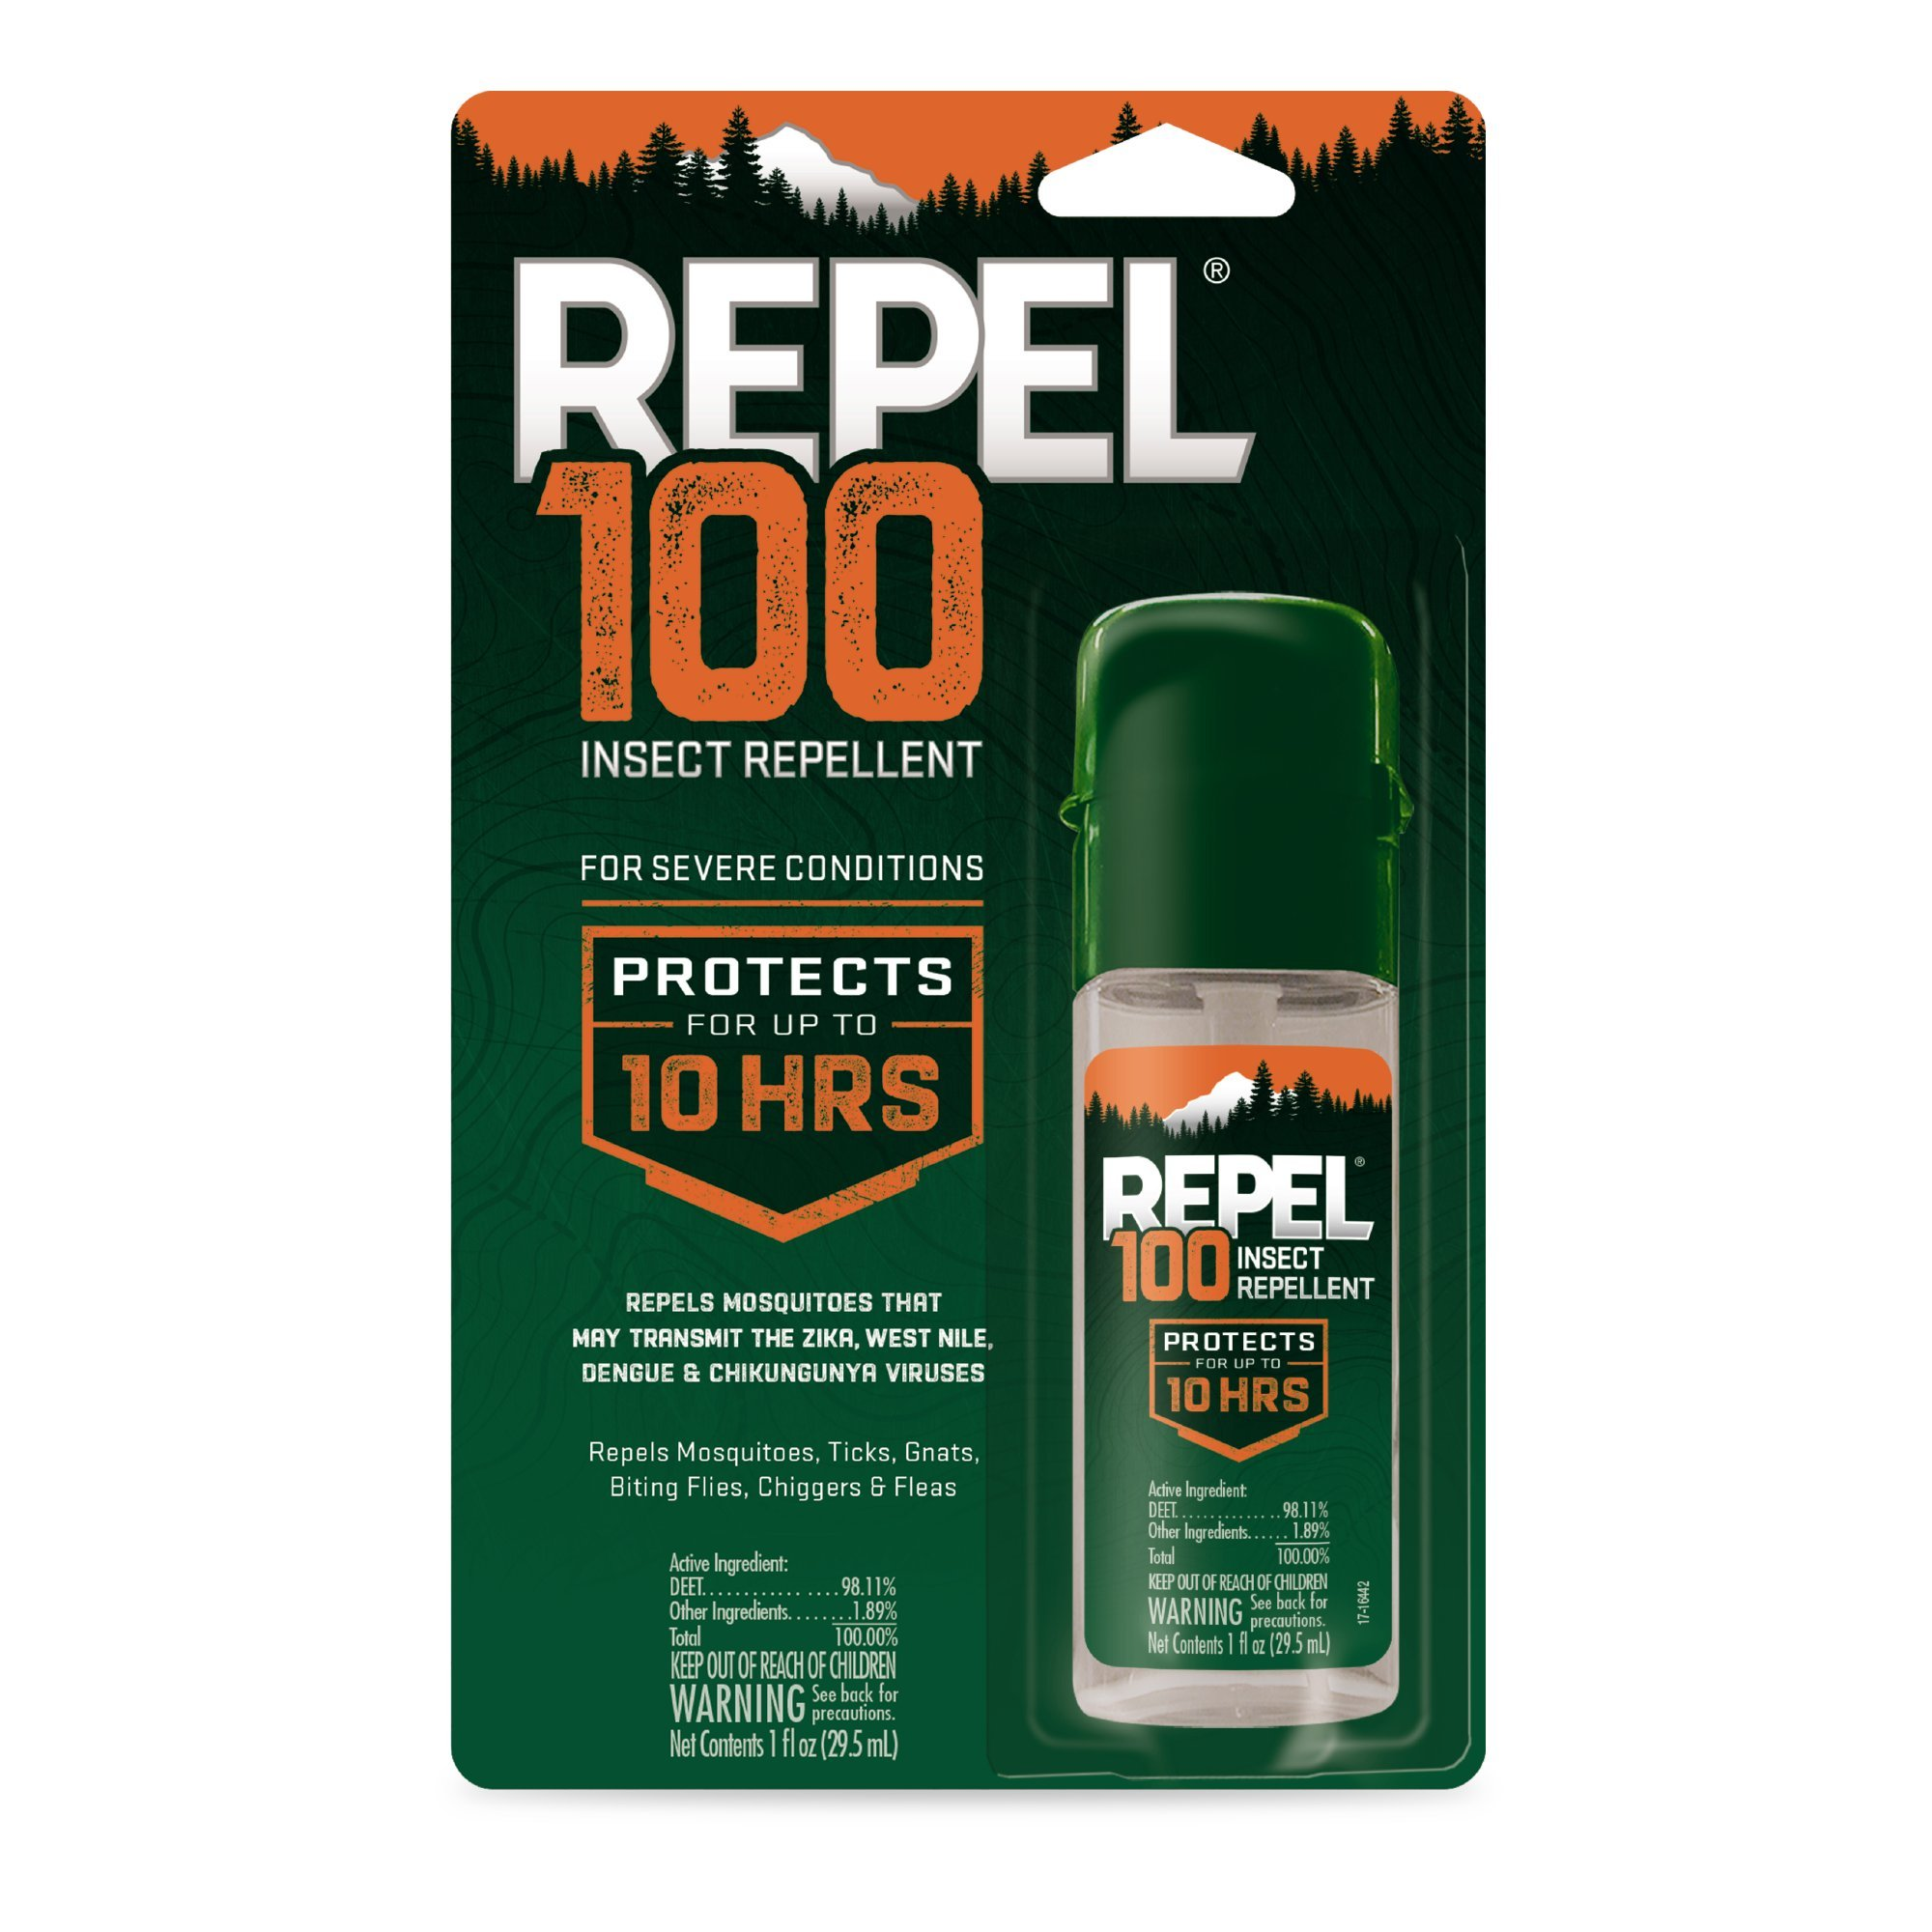 Repel 100 Insect Repellent, Pump Spray, 1-Ounce, 6-Pack by Repel